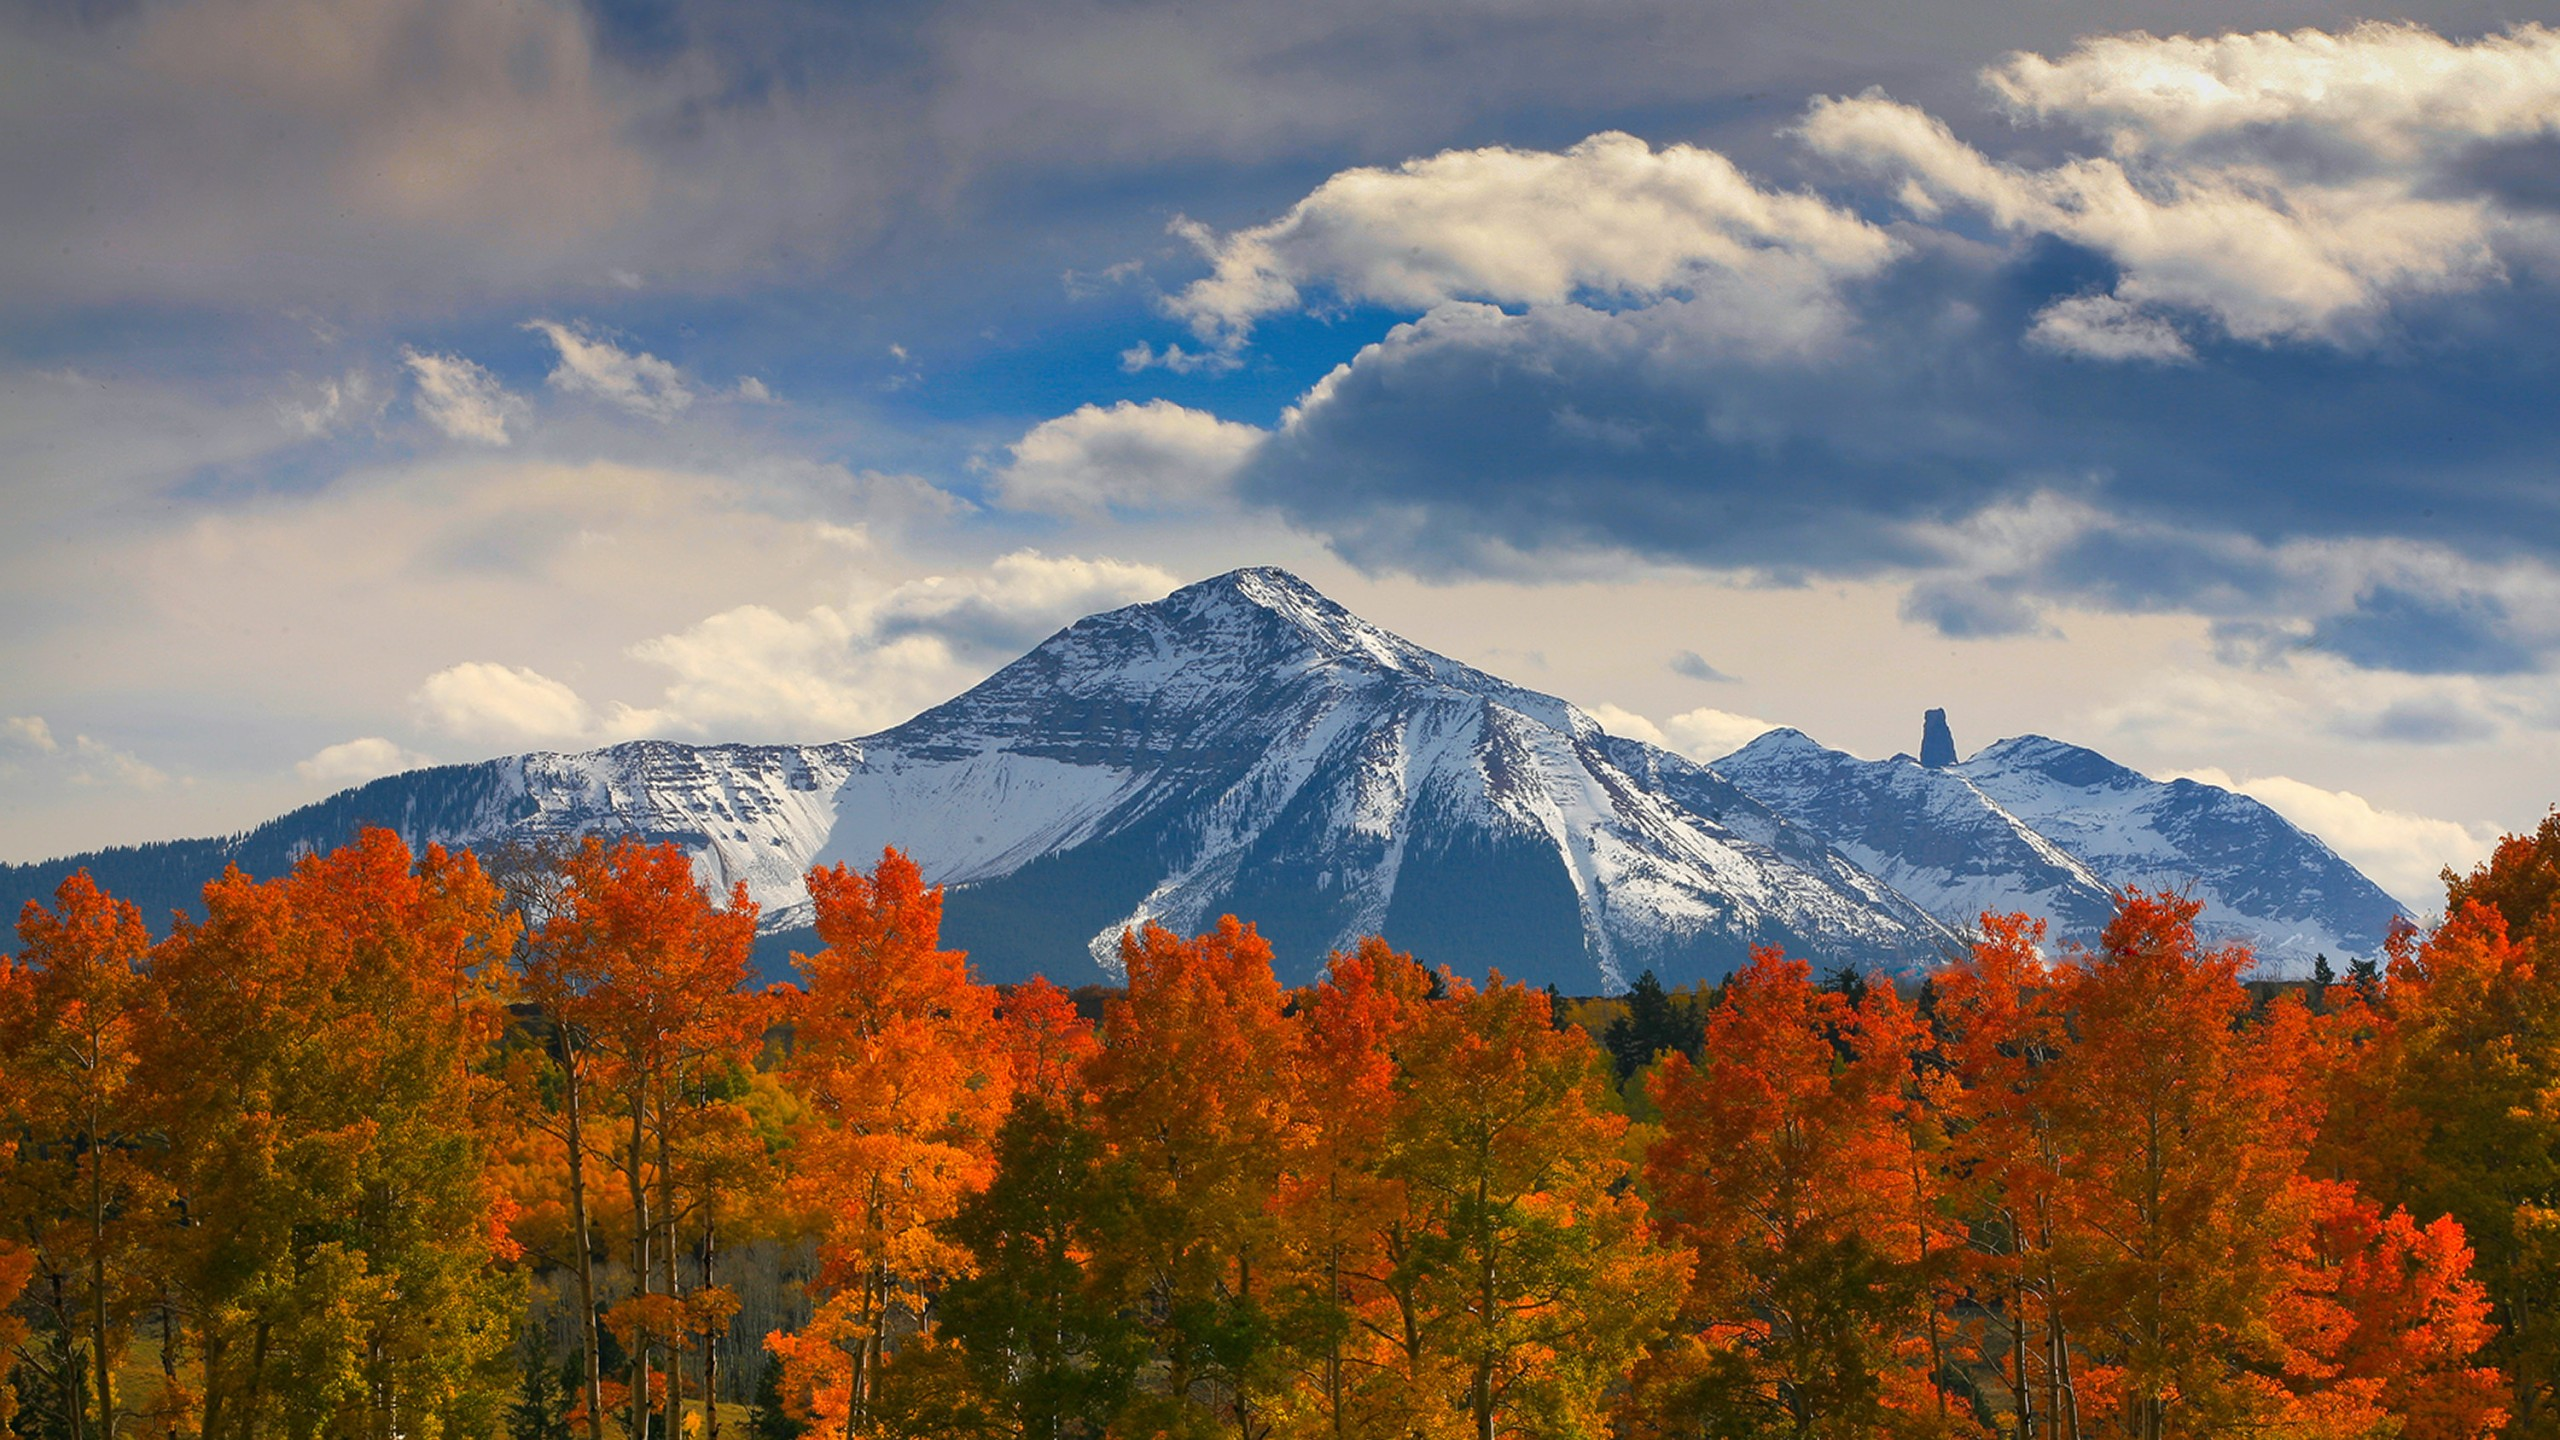 Autumn trees in the mountains hd wallpaper background - Colorado desktop background ...